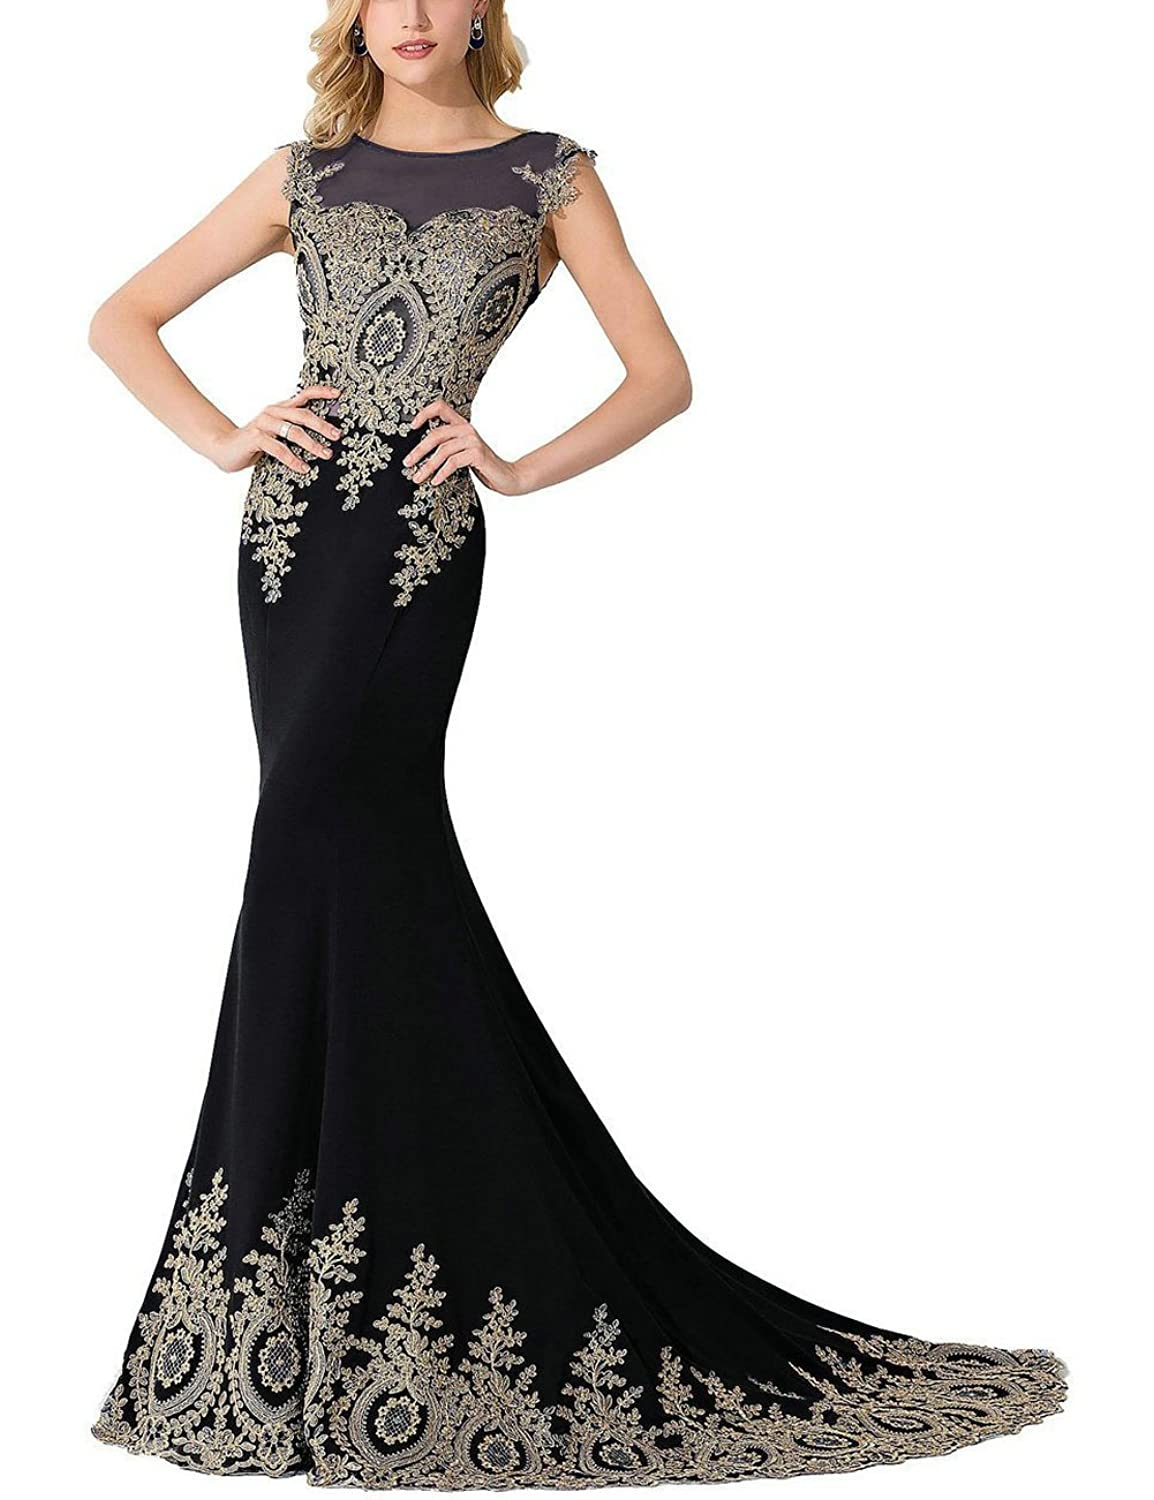 Long dress mermaid 71